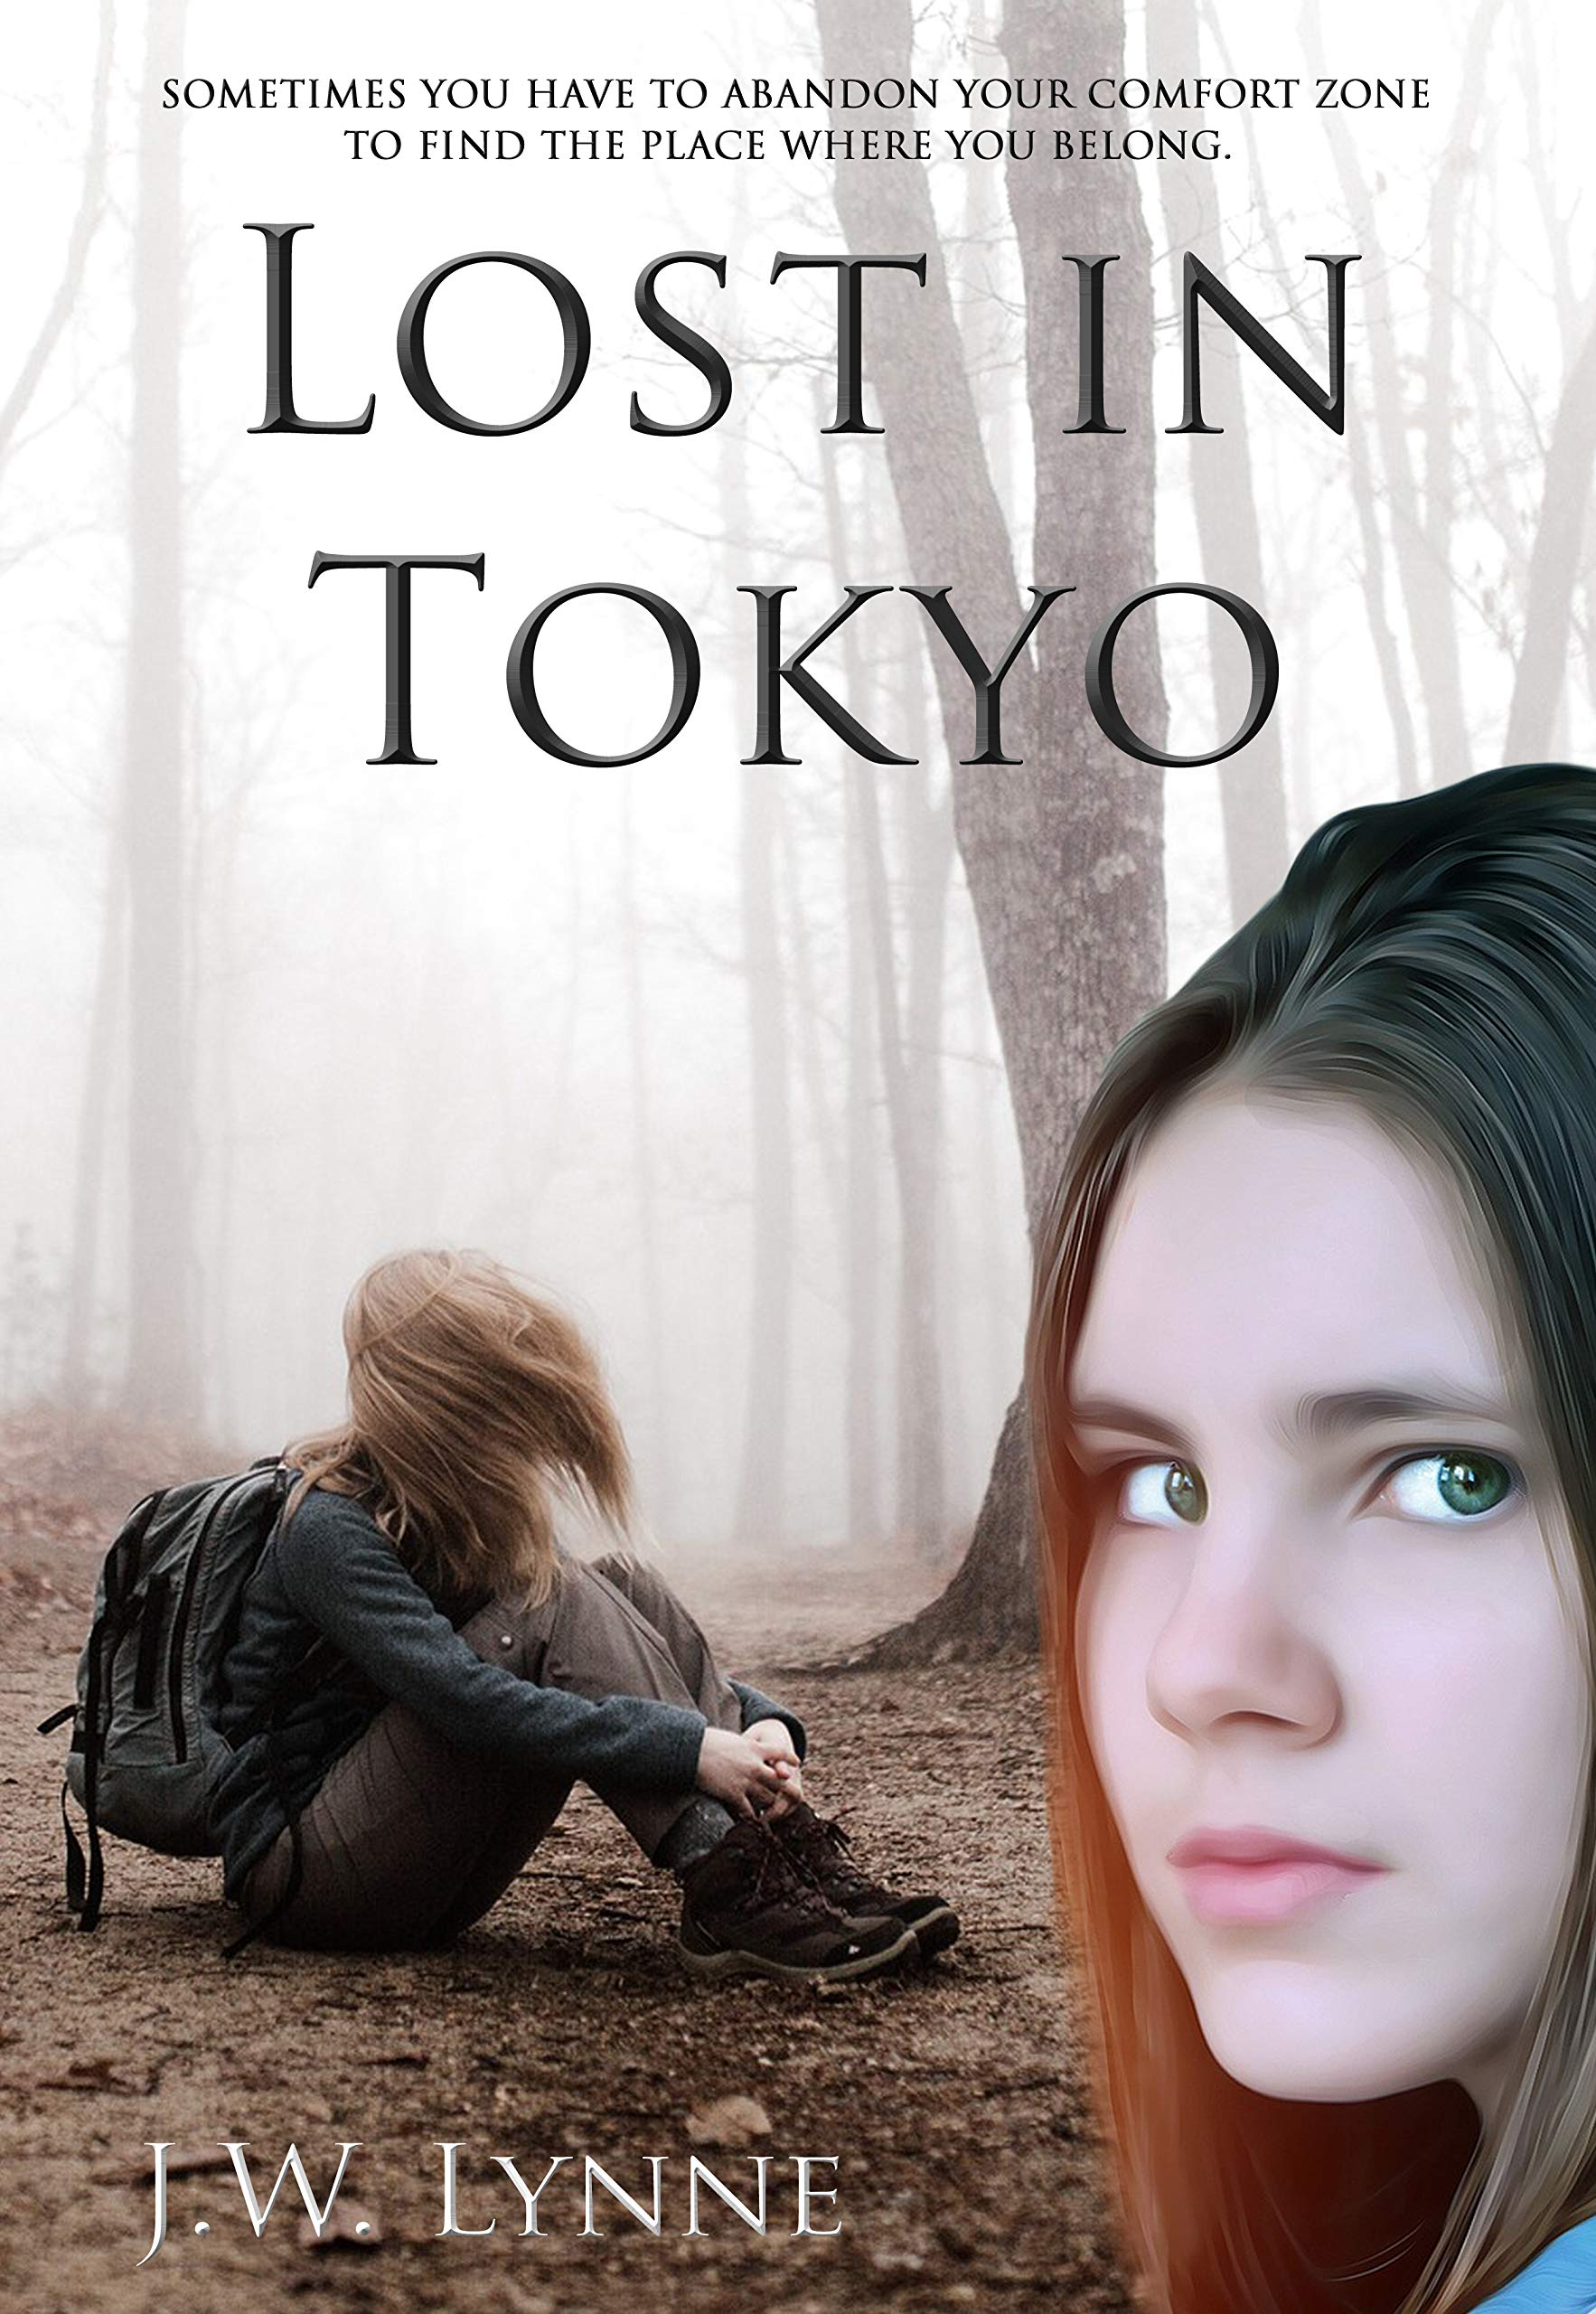 Lost in Tokyo: A girl travels to Japan to follow her missing mother's bucket list (set in Tokyo Kyoto Nara Kamakura and Nikko) (English Edition)